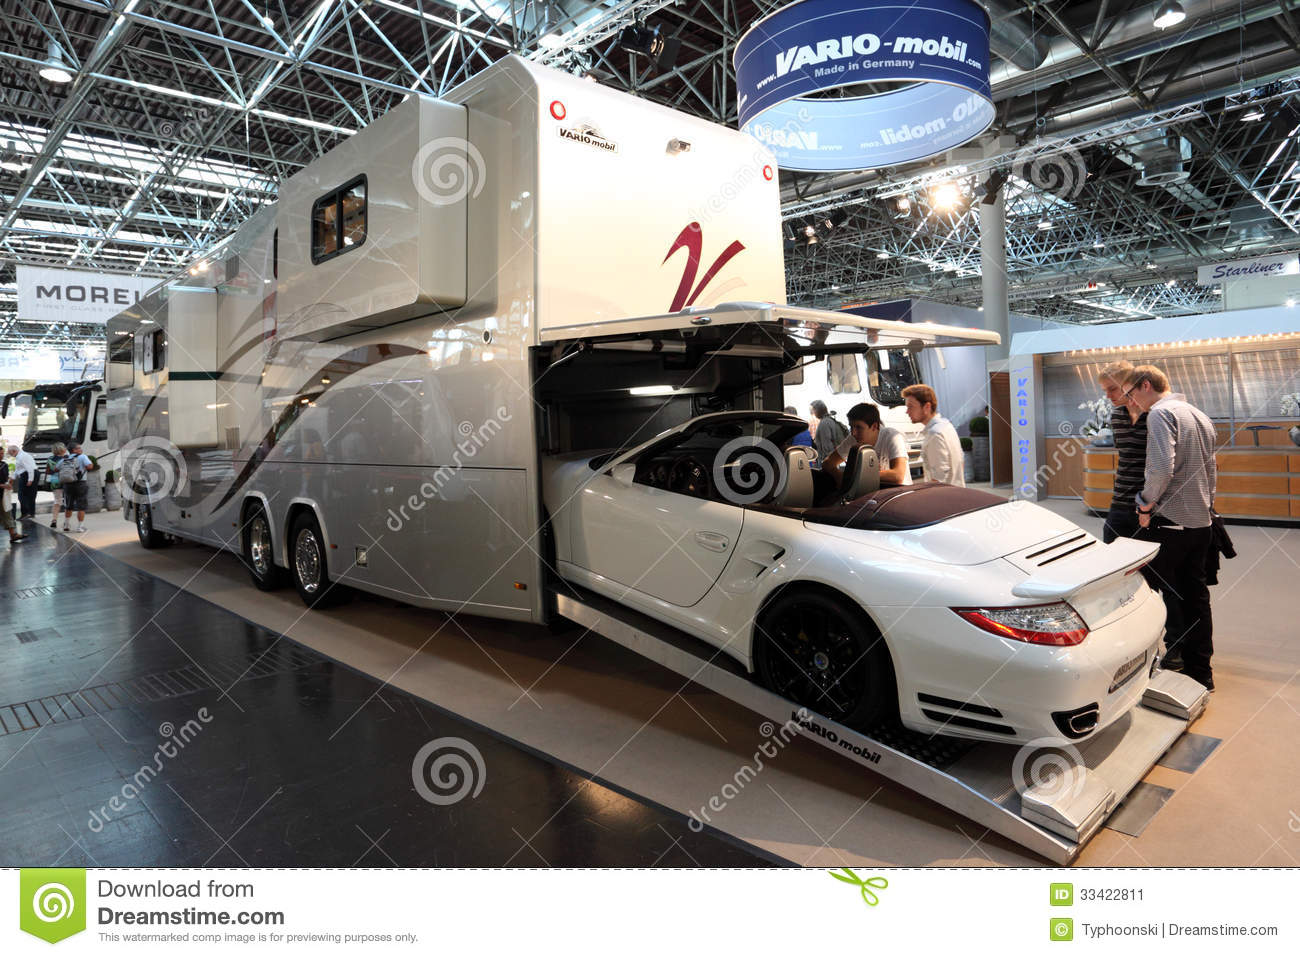 Vario mobil rv with built in garage editorial photo for Salon de dusseldorf camping car